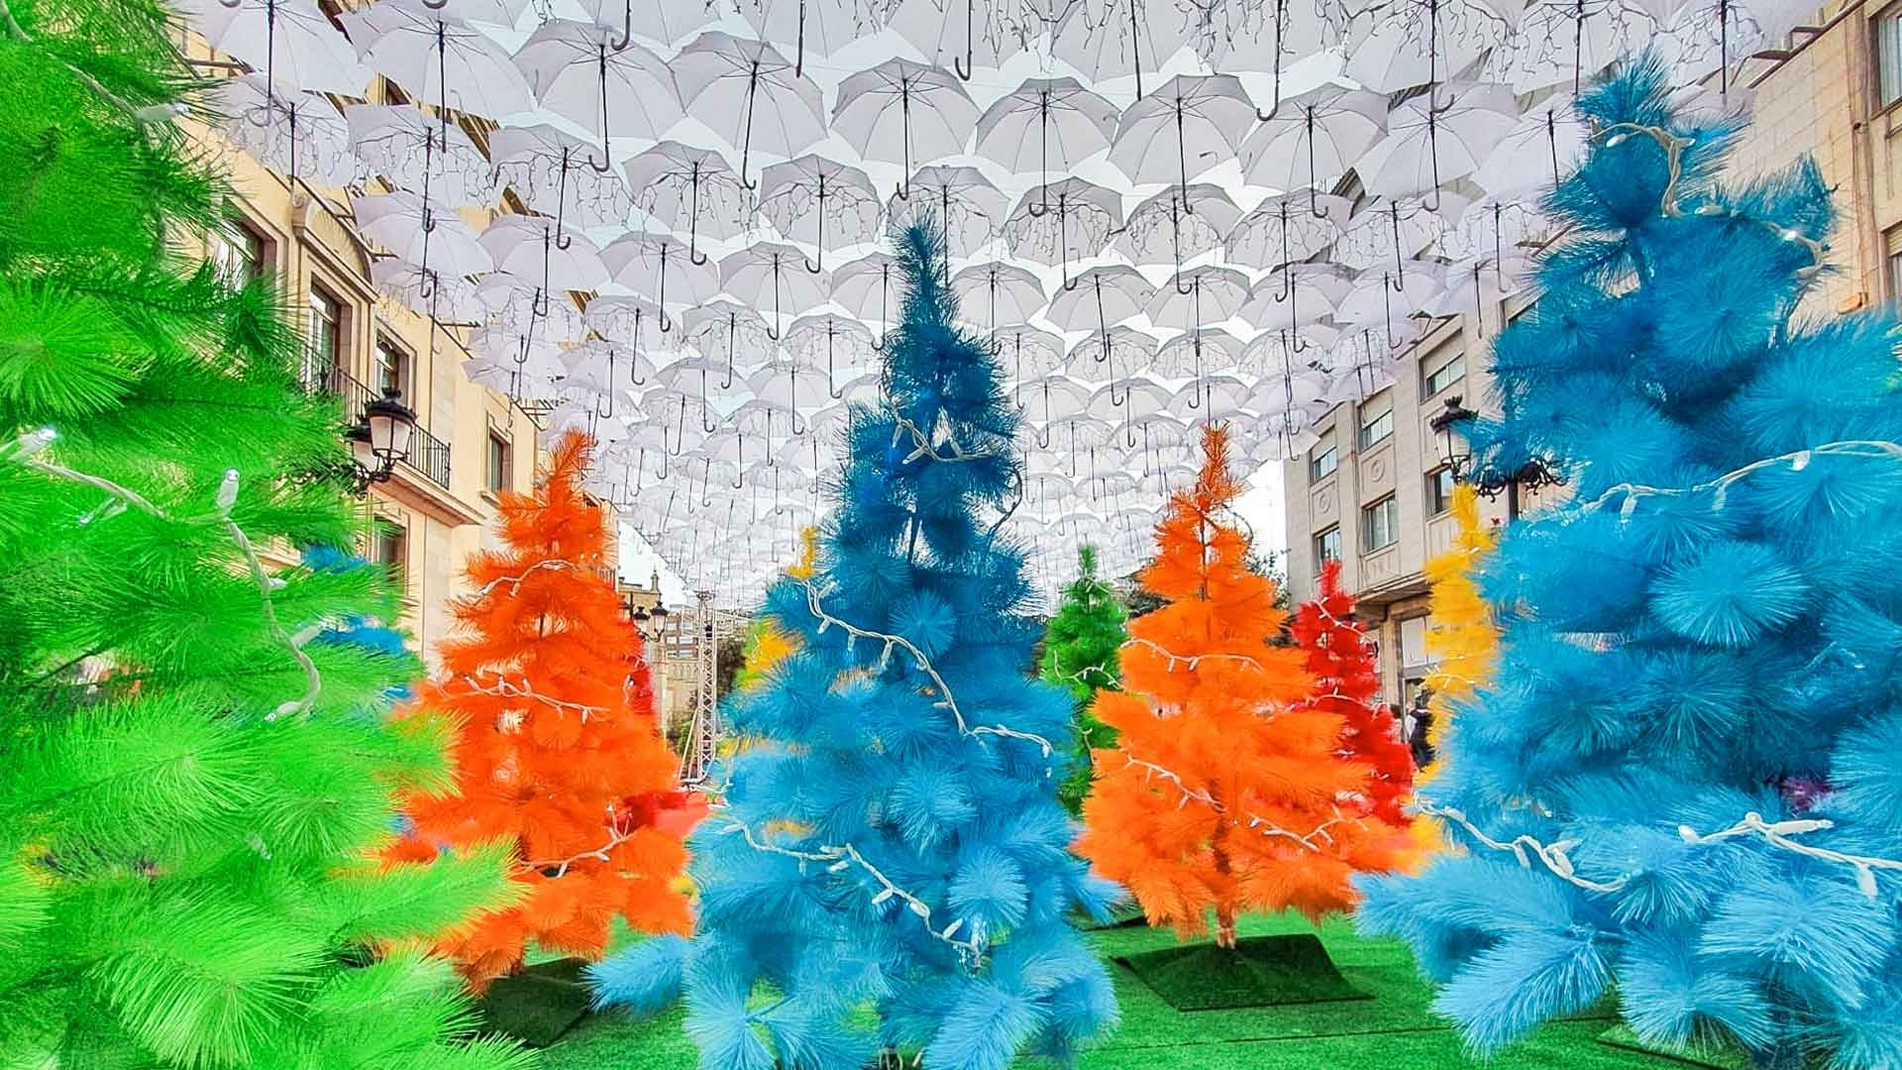 Umbrella Sky Project - Castelló de La Plana'19